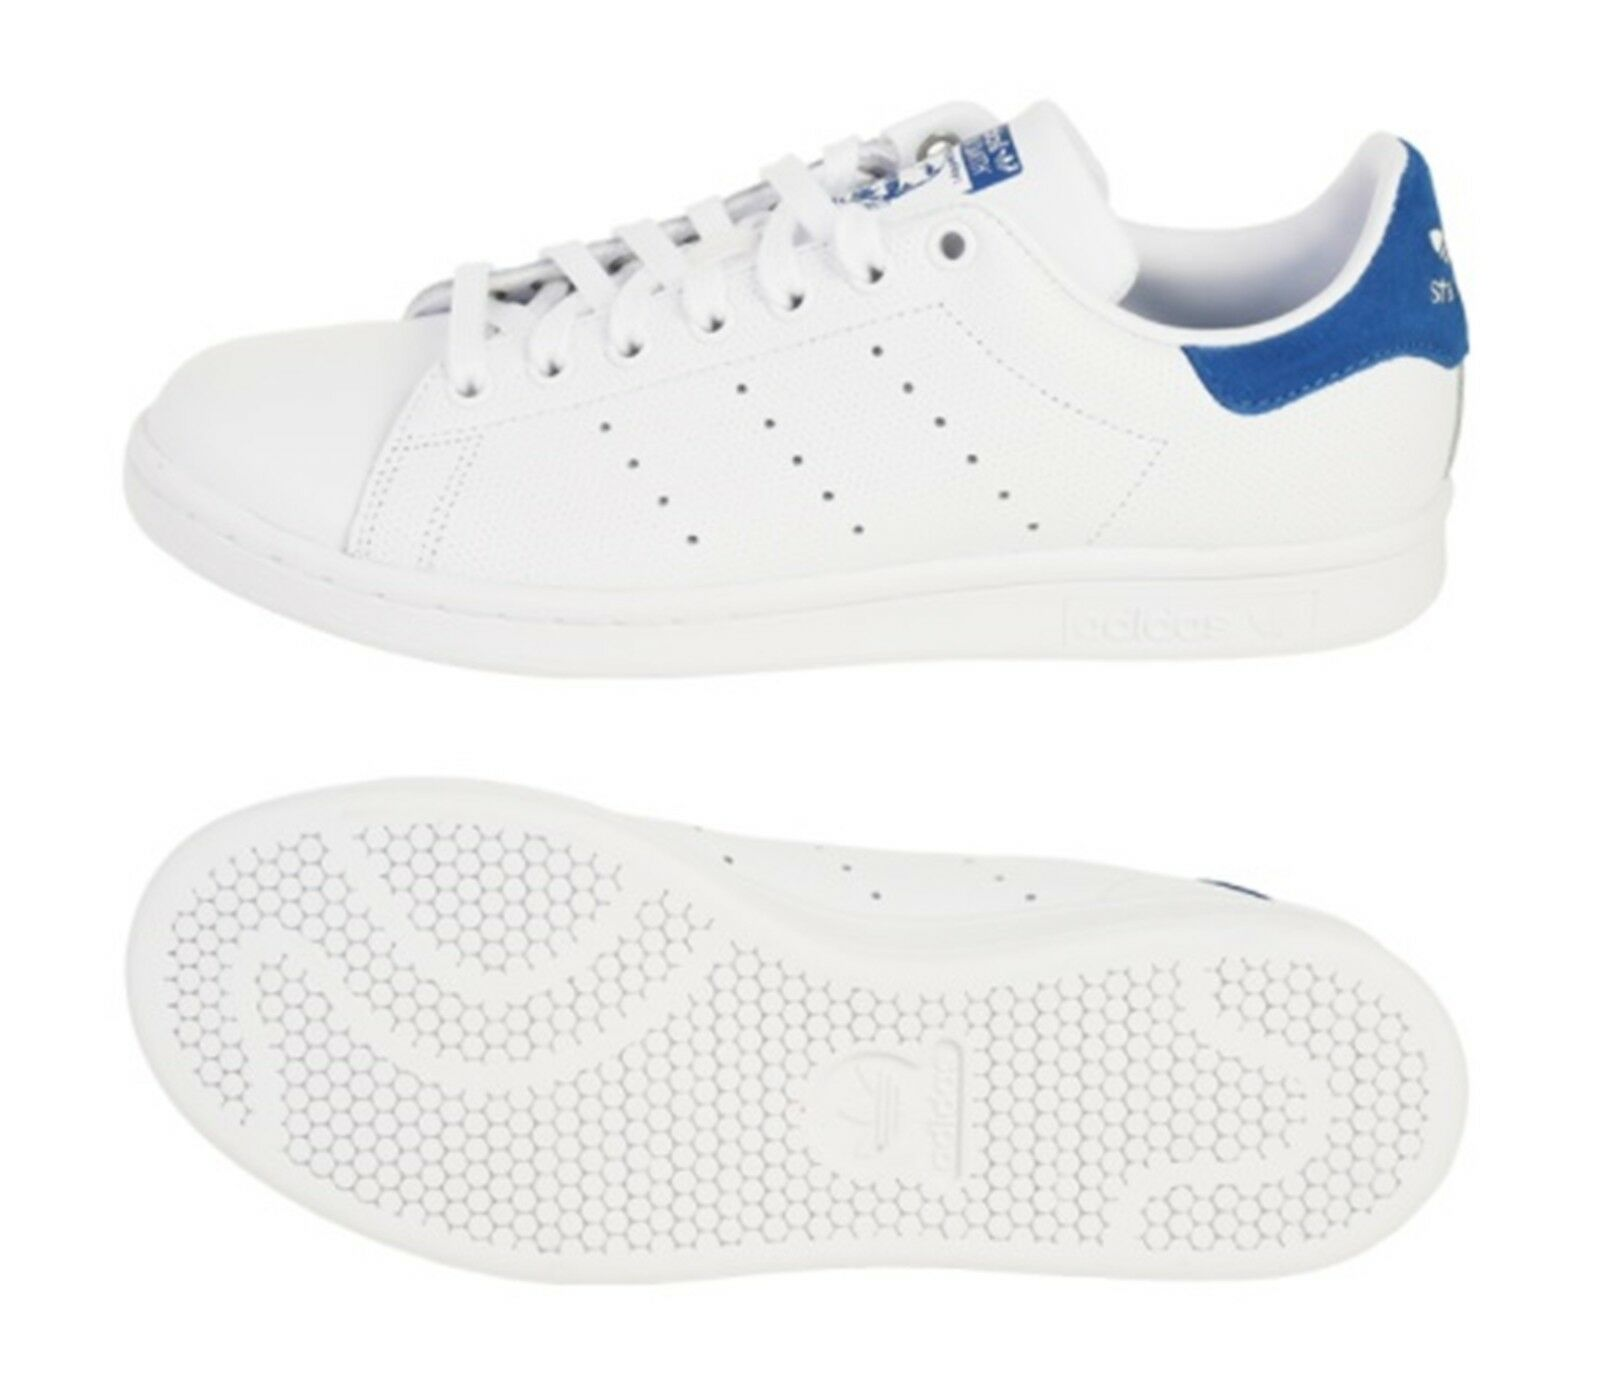 Adidas Men Original Stan Smith Training shoes Running White Sneakers shoes CQ2208